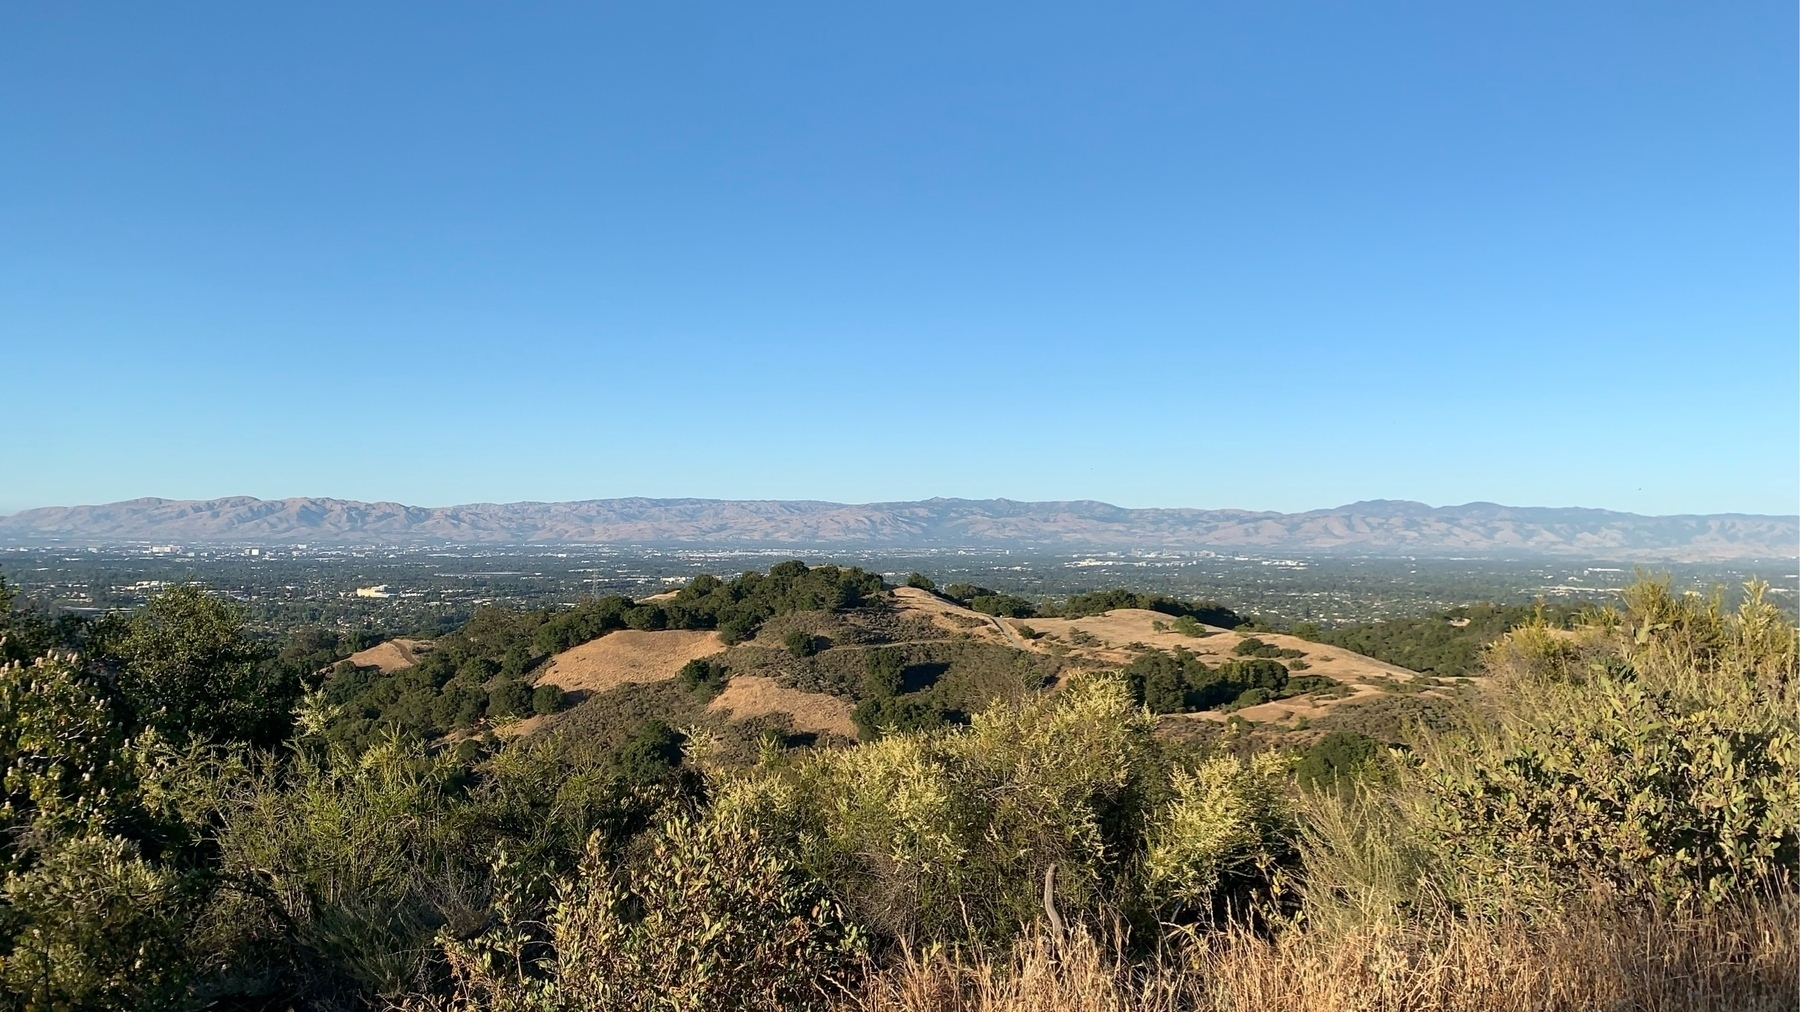 San Francisco South Bay as seen from the Stevens Creek Reservoir Coyote Trail